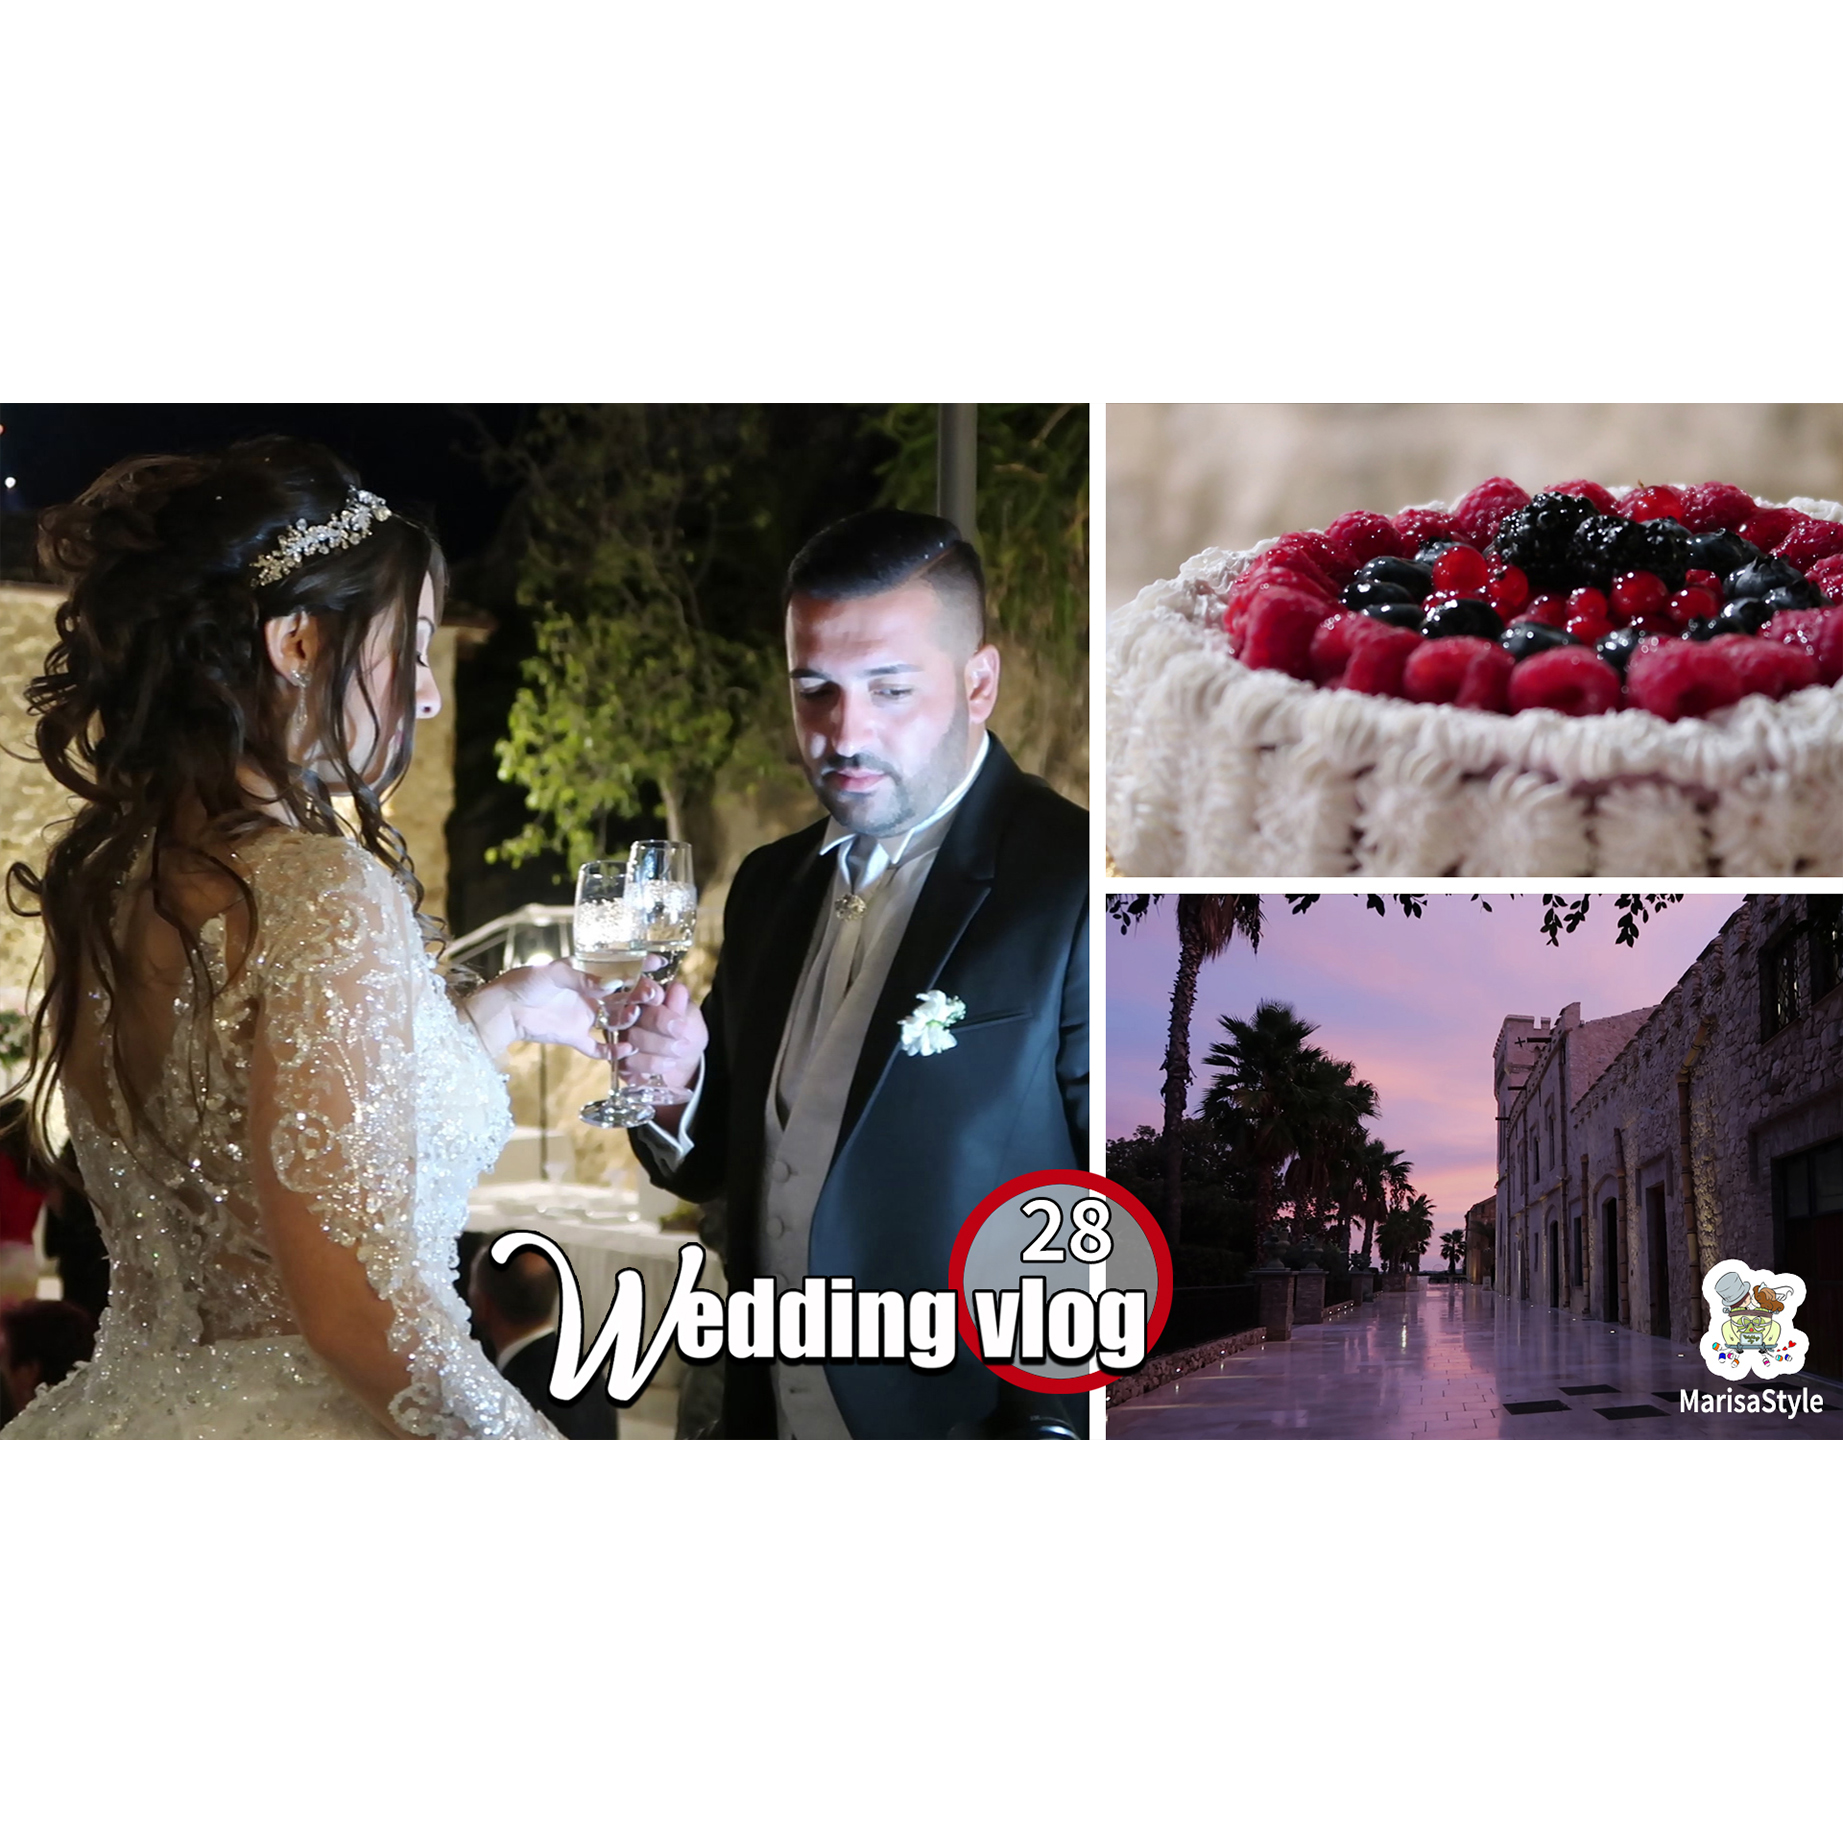 wedding vlog castello ducale colonna joppolo